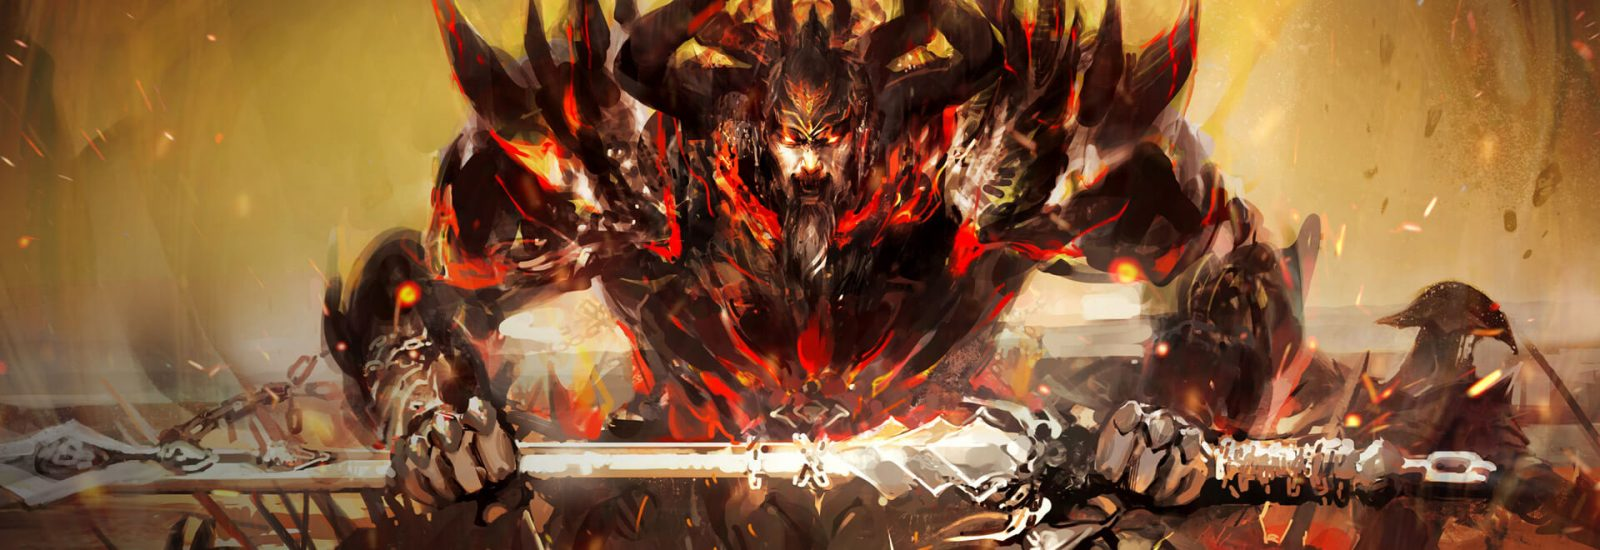 guild wars 2 path of fire pc digital games